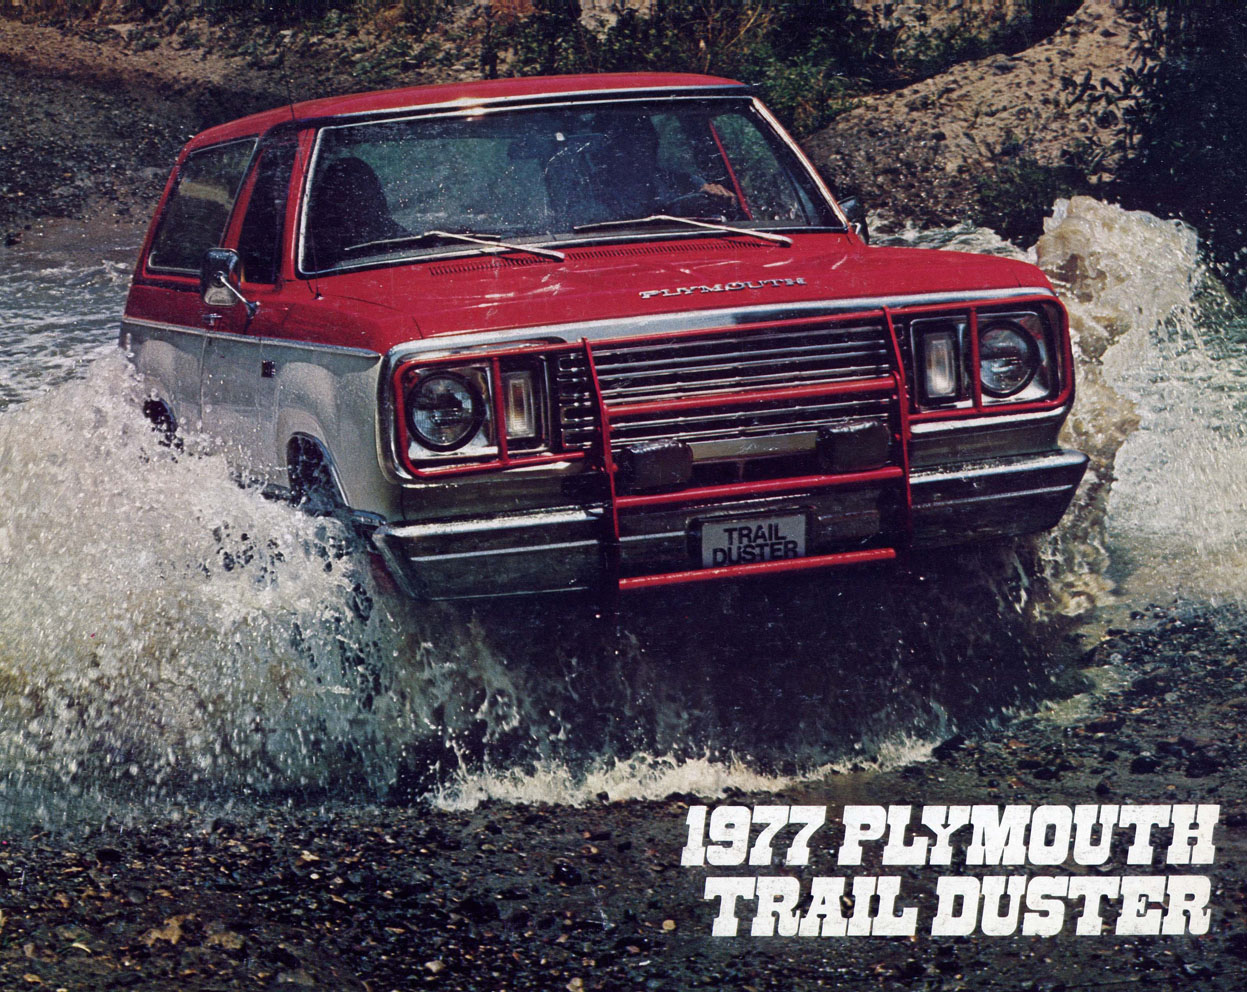 1977 Trail Duster #11